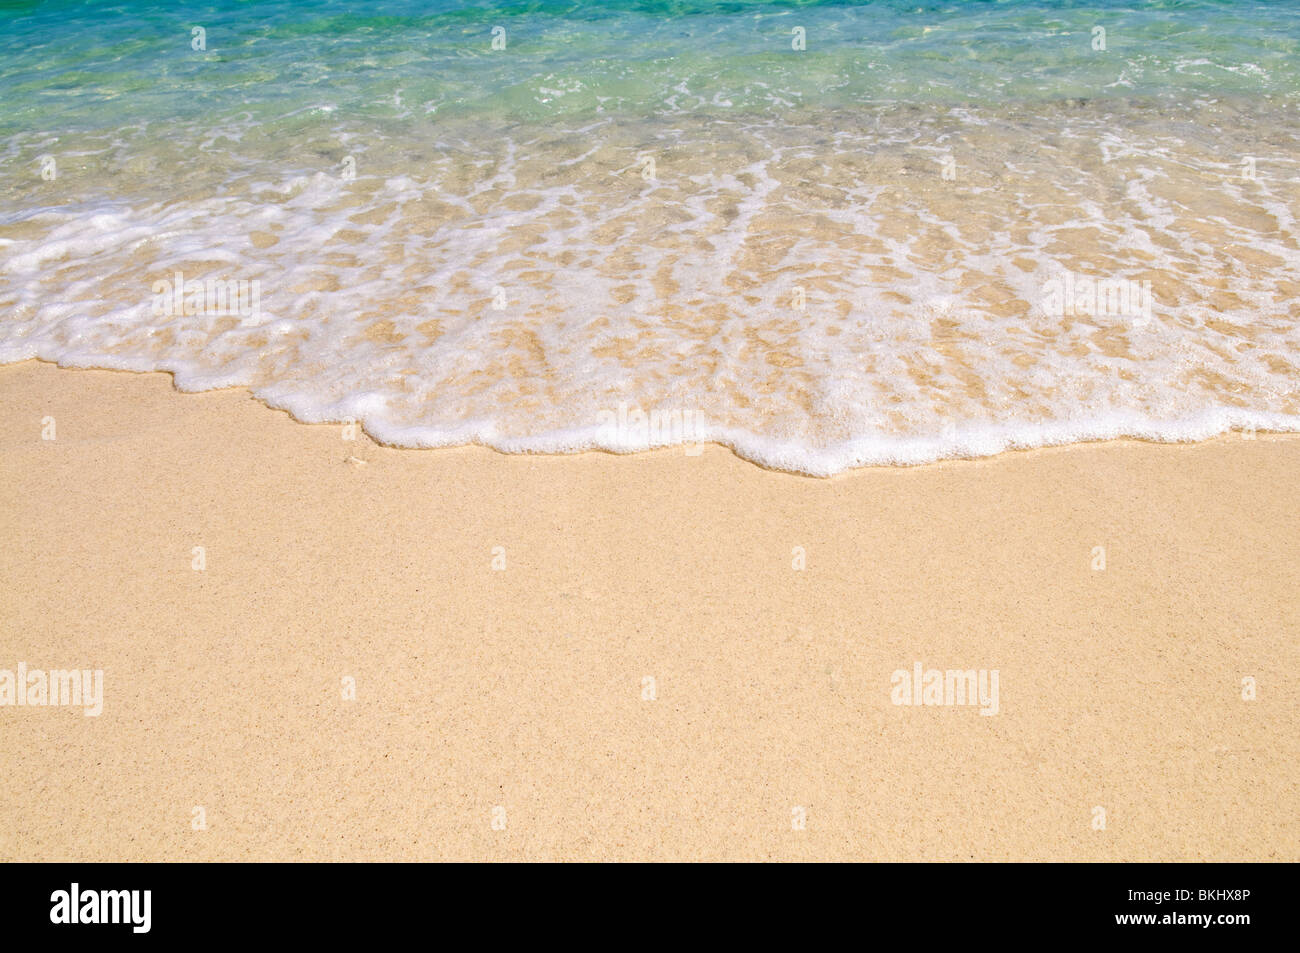 A wave breaking on the sand - Stock Image